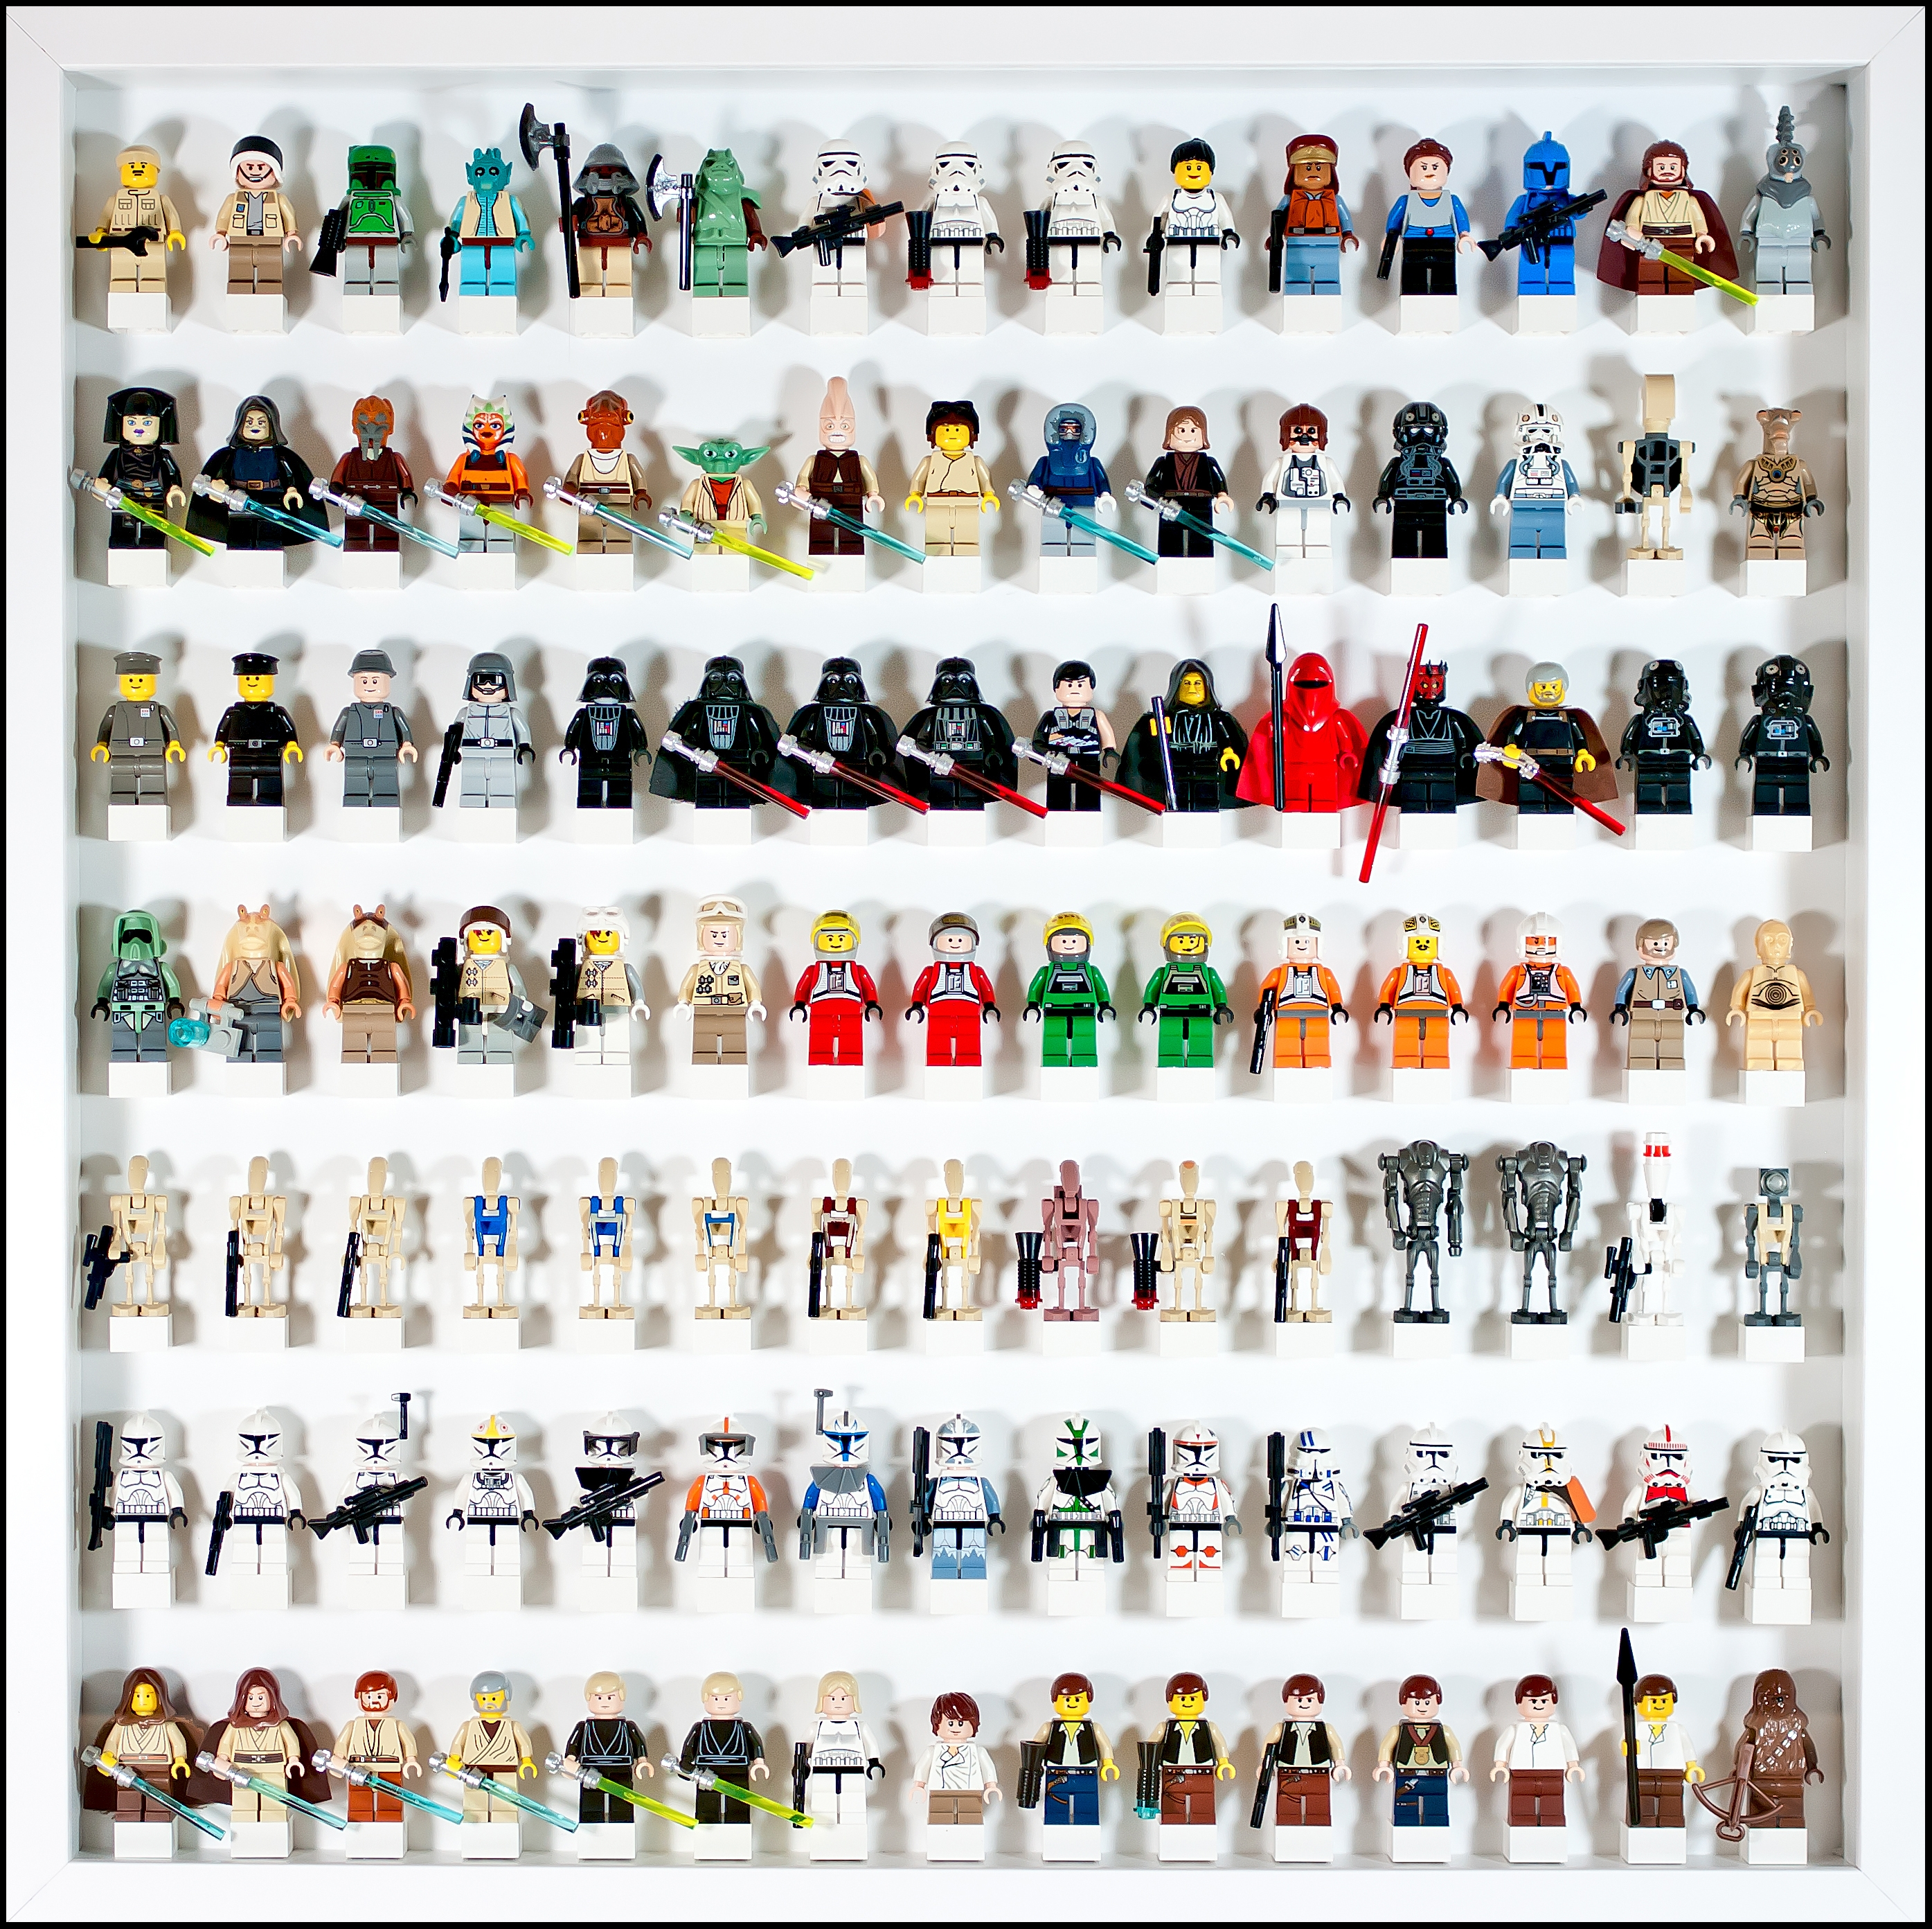 lego star wars minifigs collection brickset forum. Black Bedroom Furniture Sets. Home Design Ideas